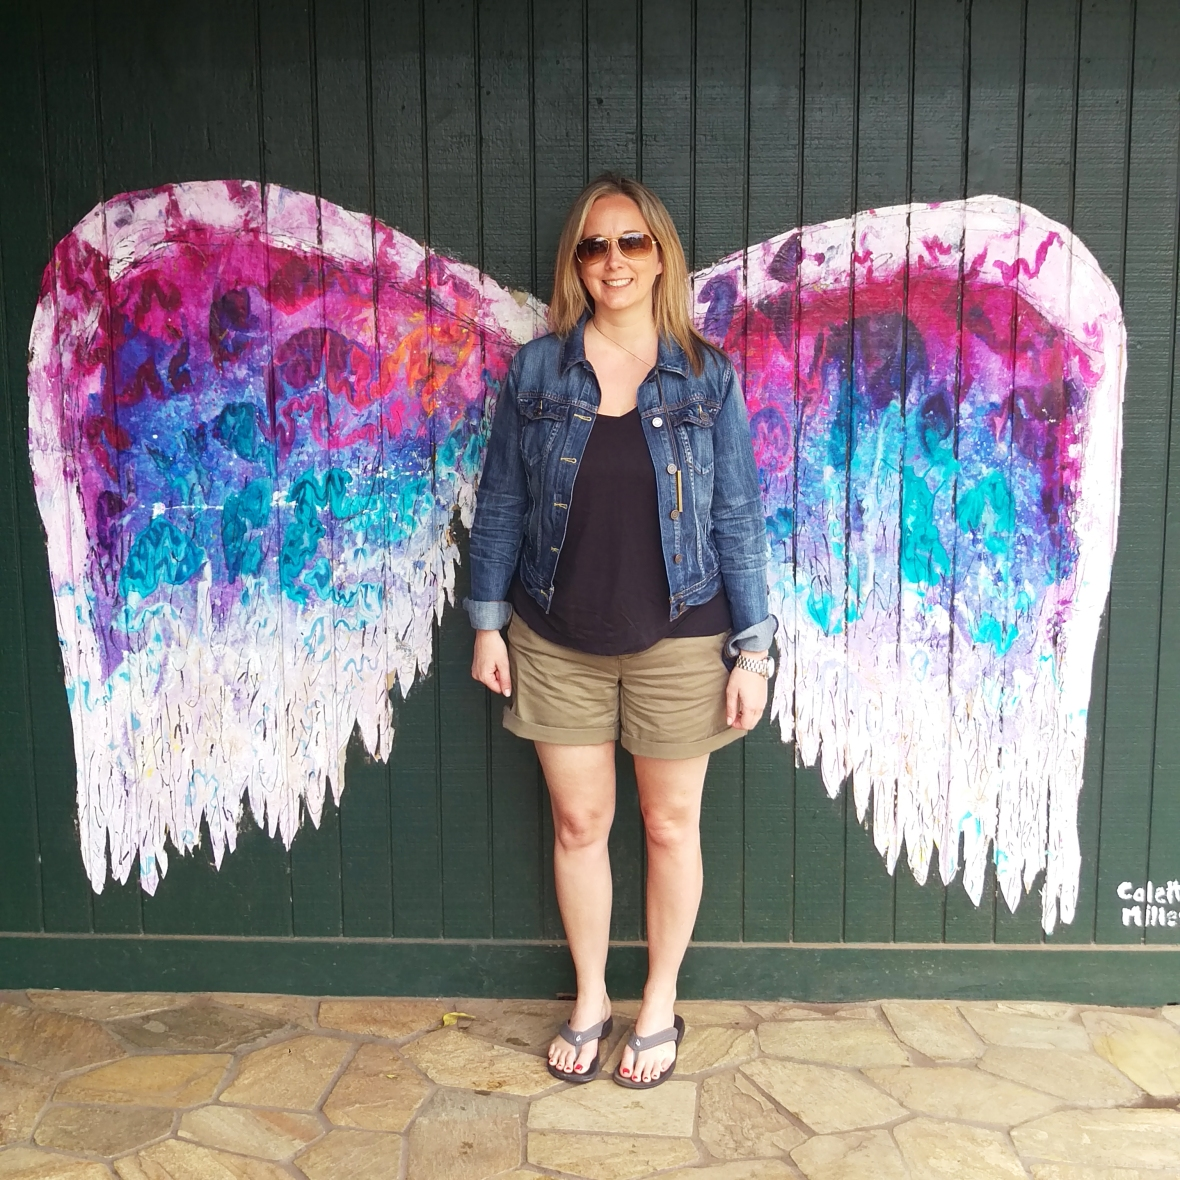 Colette Miller Wings in Haleiwa